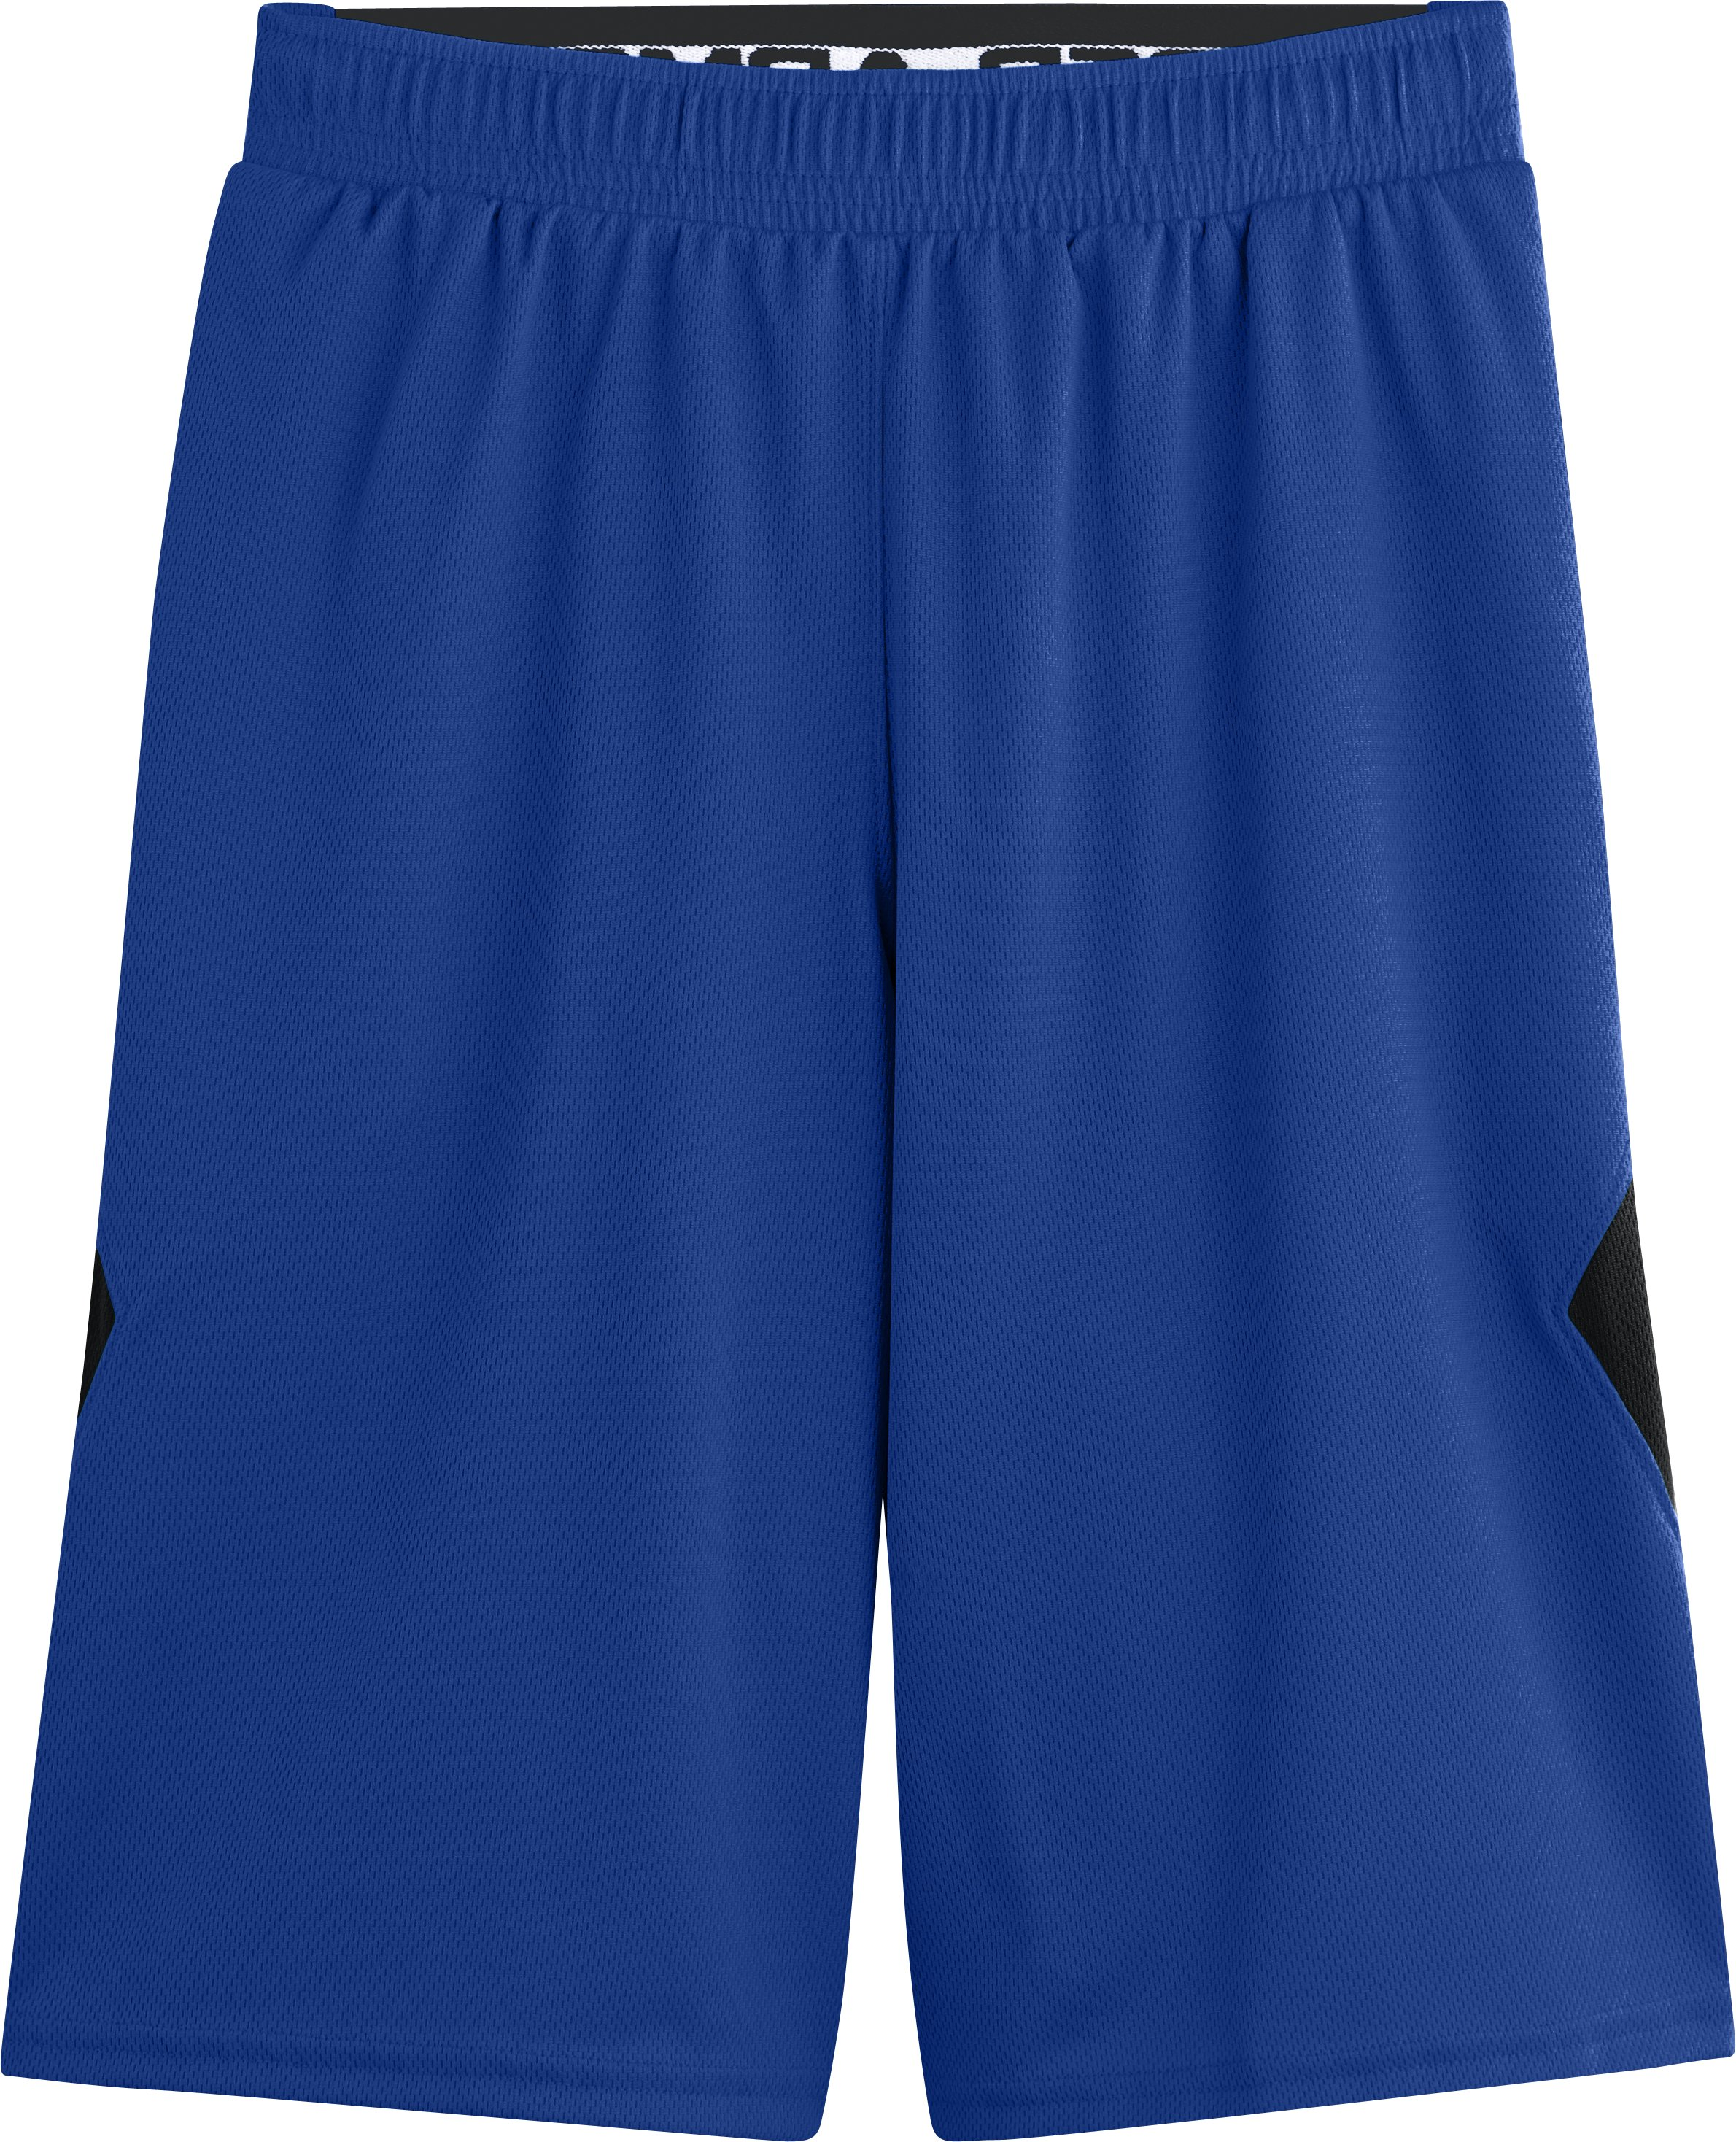 Boys' UA From Downtown Shorts, Royal, Laydown